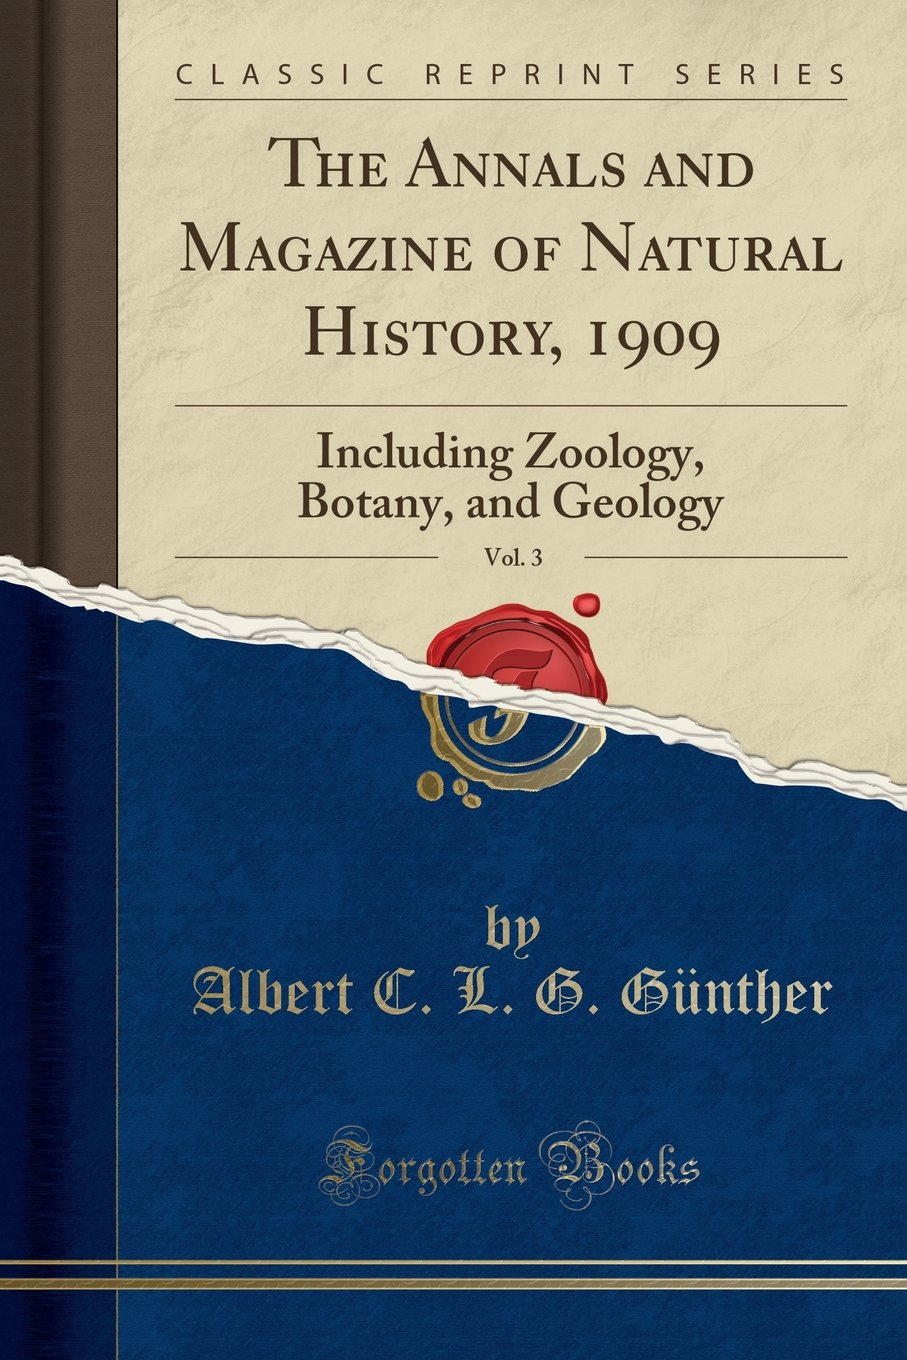 The Annals and Magazine of Natural History, 1909, Vol. 3: Including Zoology, Botany, and Geology (Classic Reprint) pdf epub